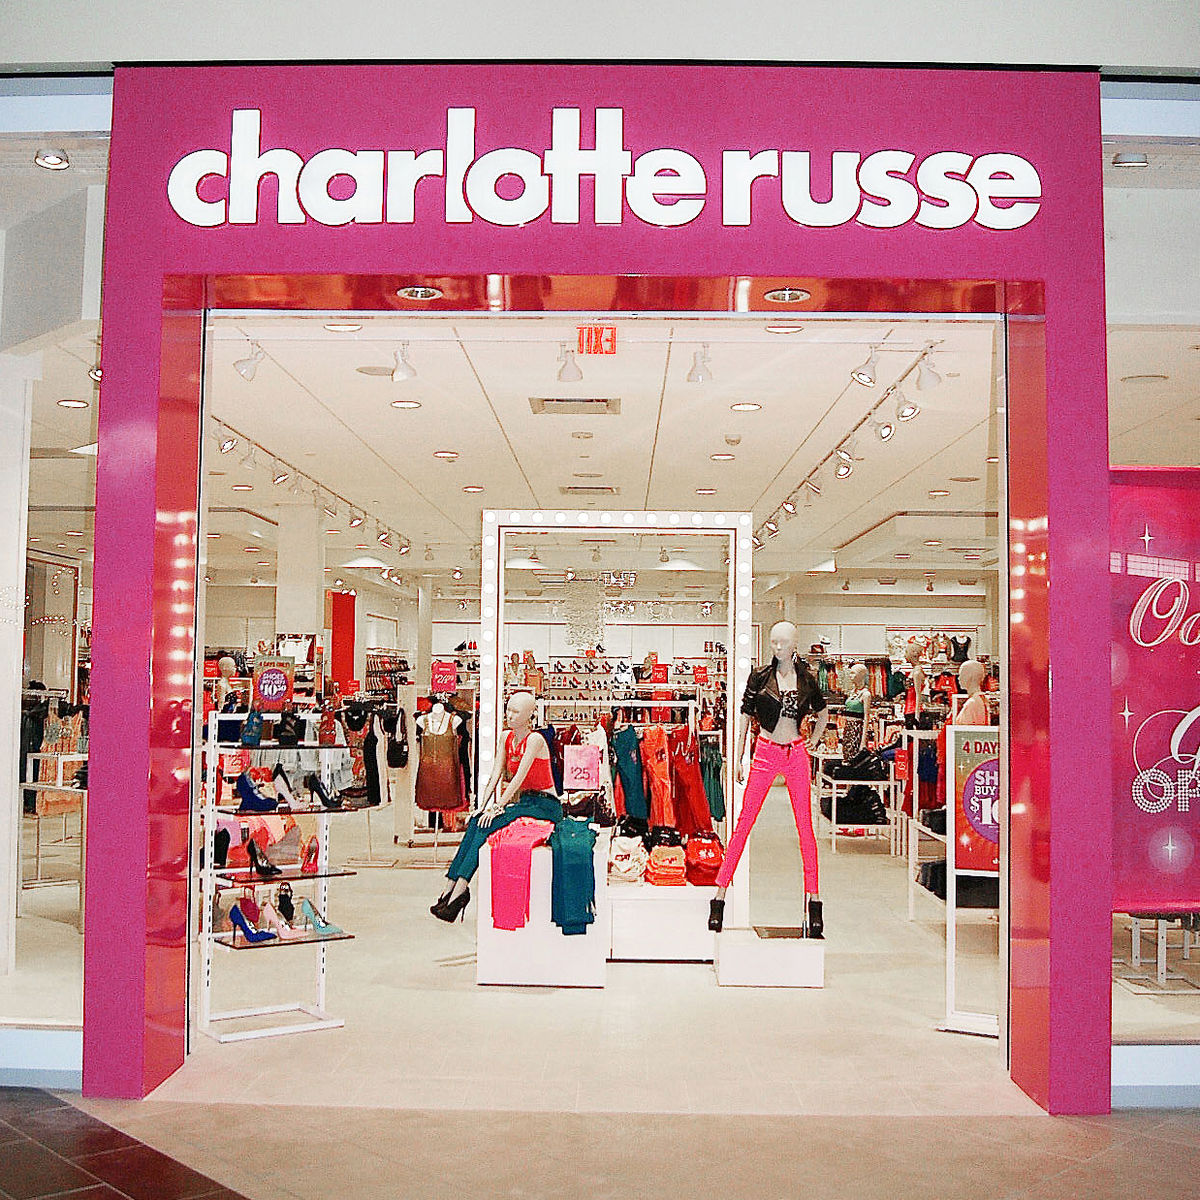 Quality trendy clothing at value prices is the goal of this Southern California-based store. Established in , Charlotte Russe has since expanded to more than mall stores nationwide and an ample online store at rislutharacon.ga